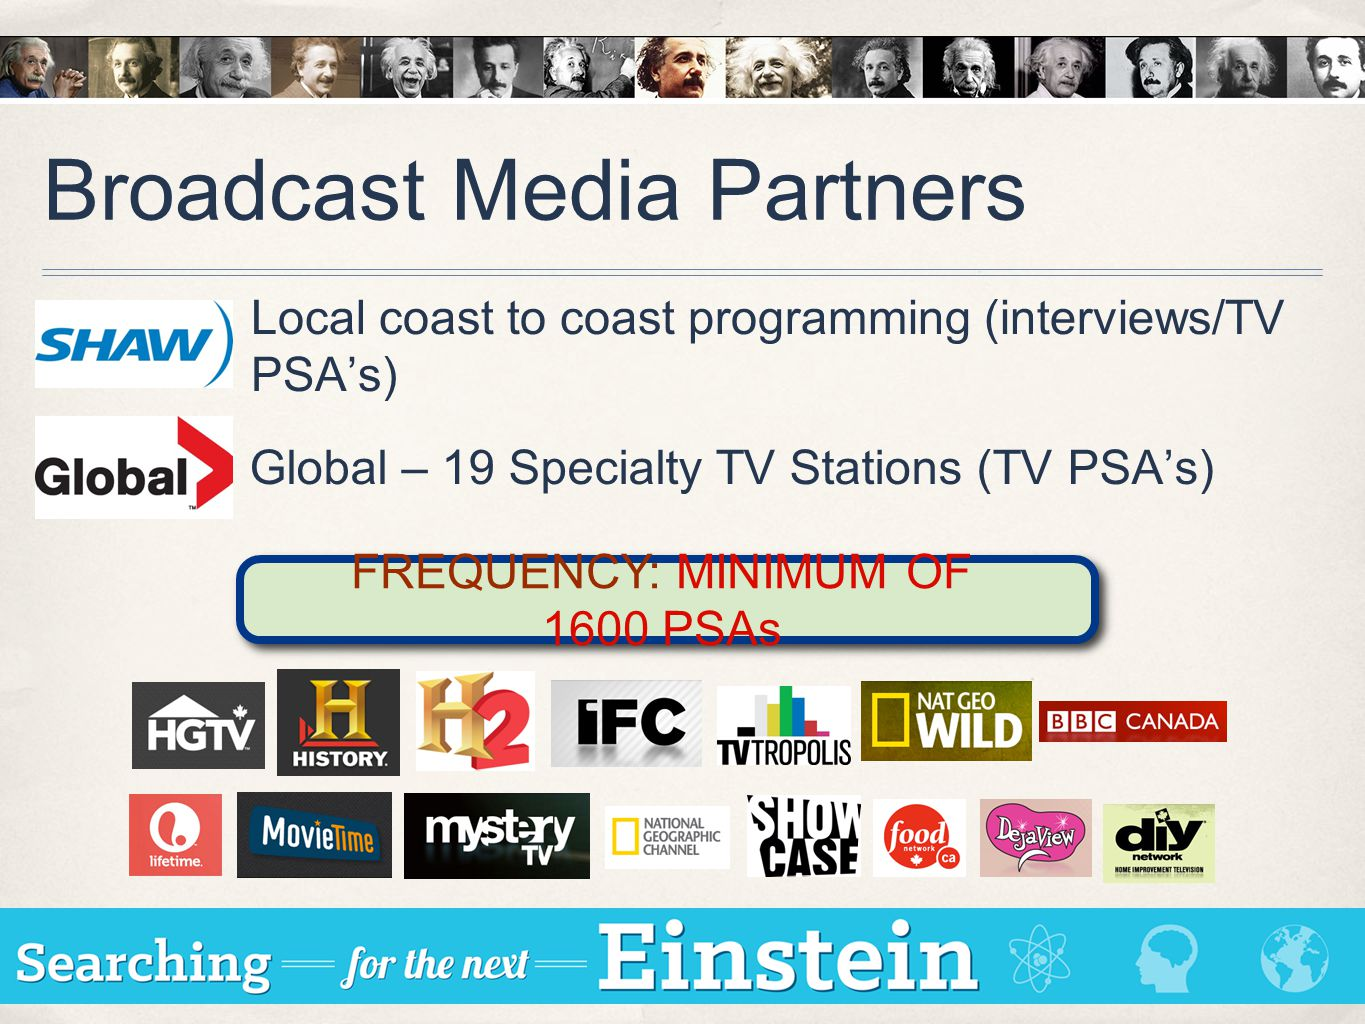 Broadcast Media Partners Local coast to coast programming (interviews/TV PSA's) FREQUENCY: MINIMUM OF 1600 PSAs Global – 19 Specialty TV Stations (TV PSA's)